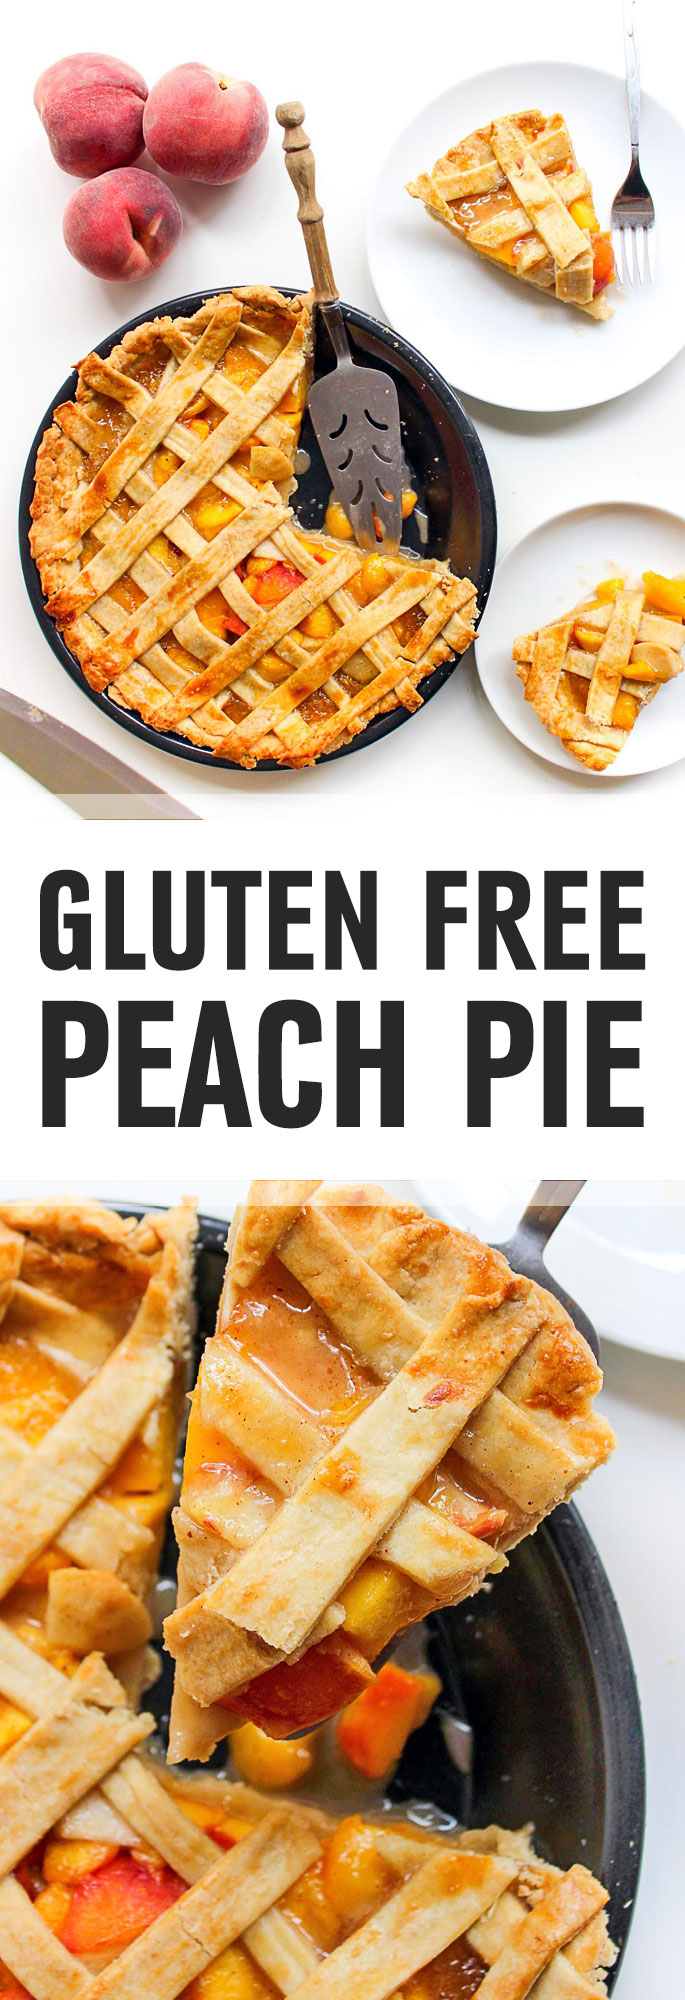 A delicious and quintessential summertime dessert enjoyed by everyone, an amazing gluten free peach pie treat. Shared via http://www.gluteninsight.com